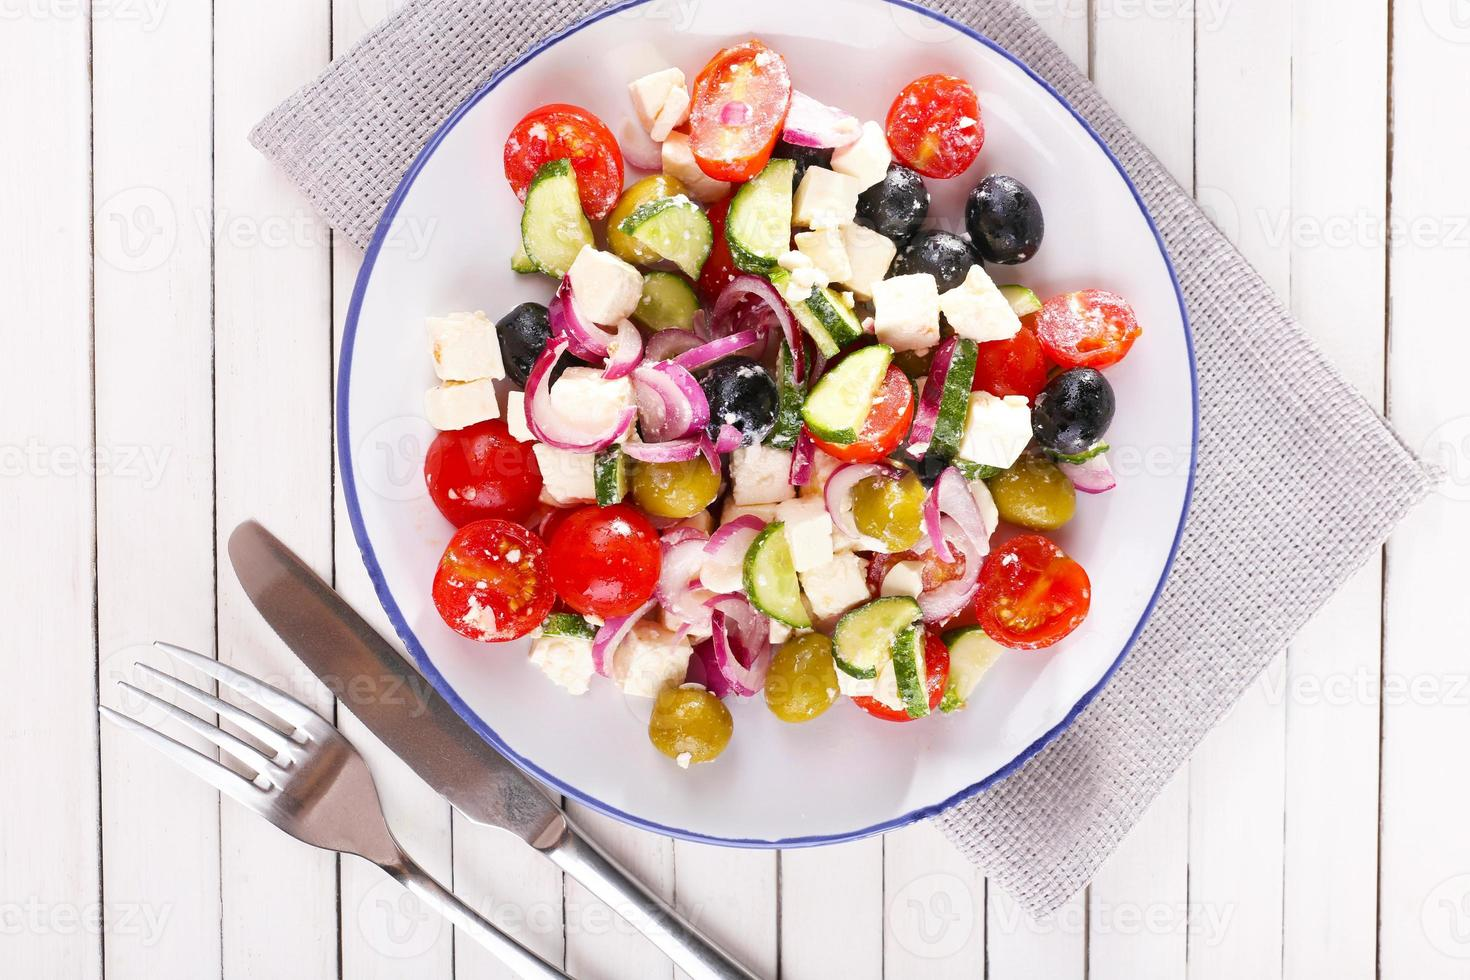 Greek salad served in plate on napkin on wooden background photo